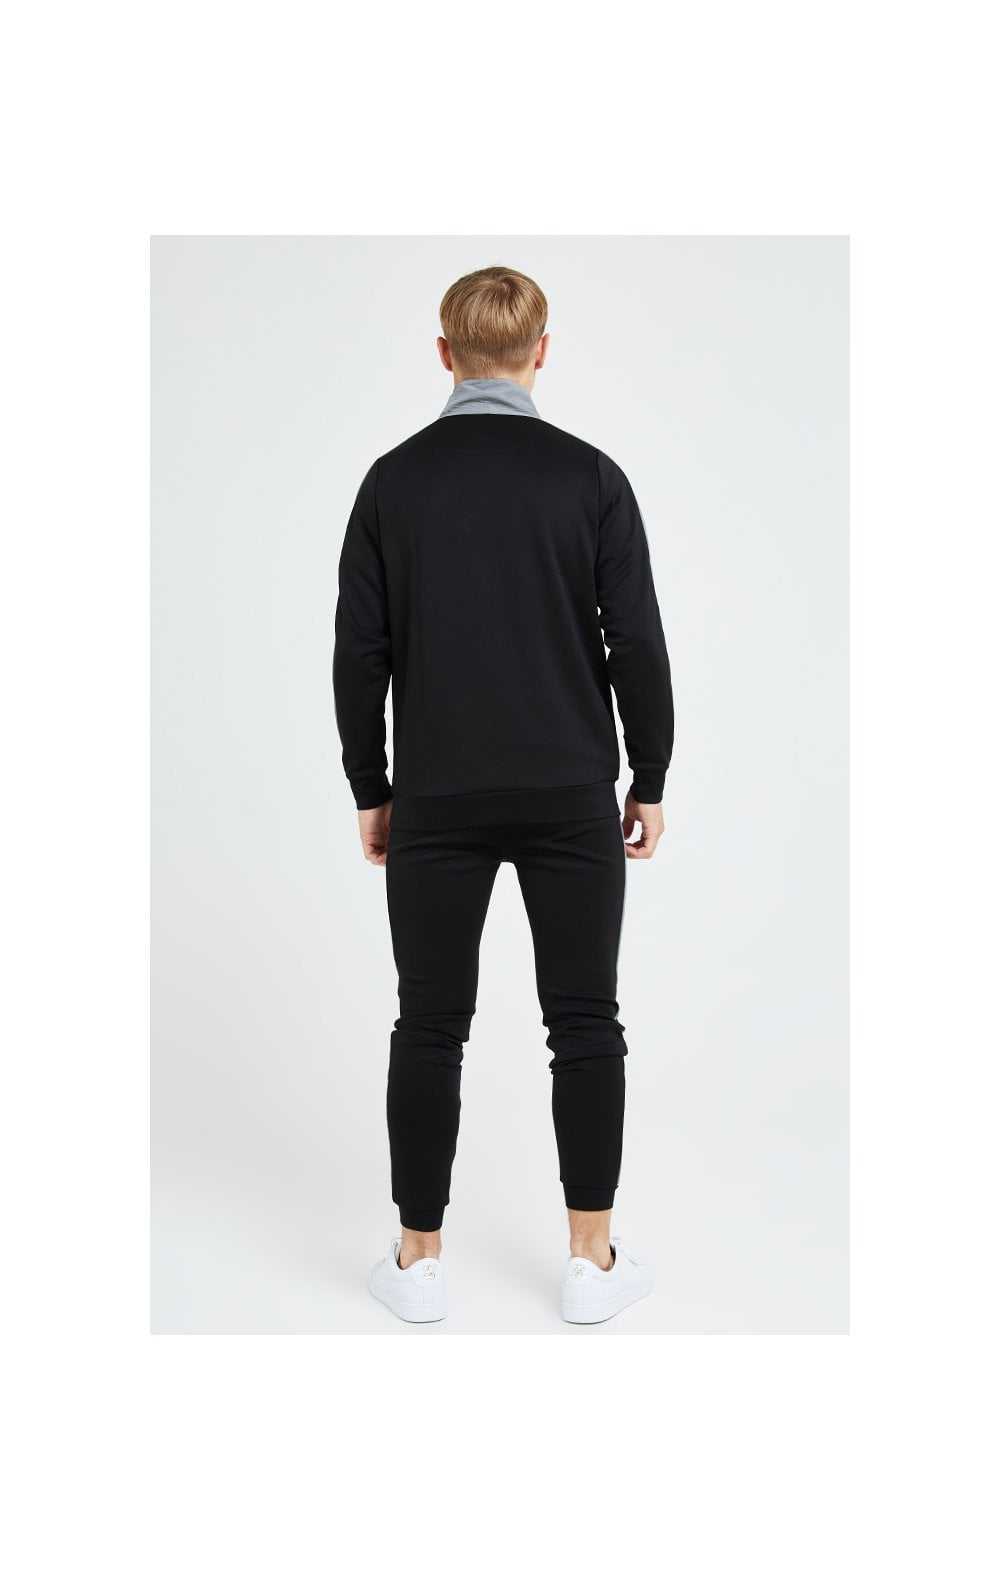 Illusive London Hybrid Joggers - Black & Grey (5)